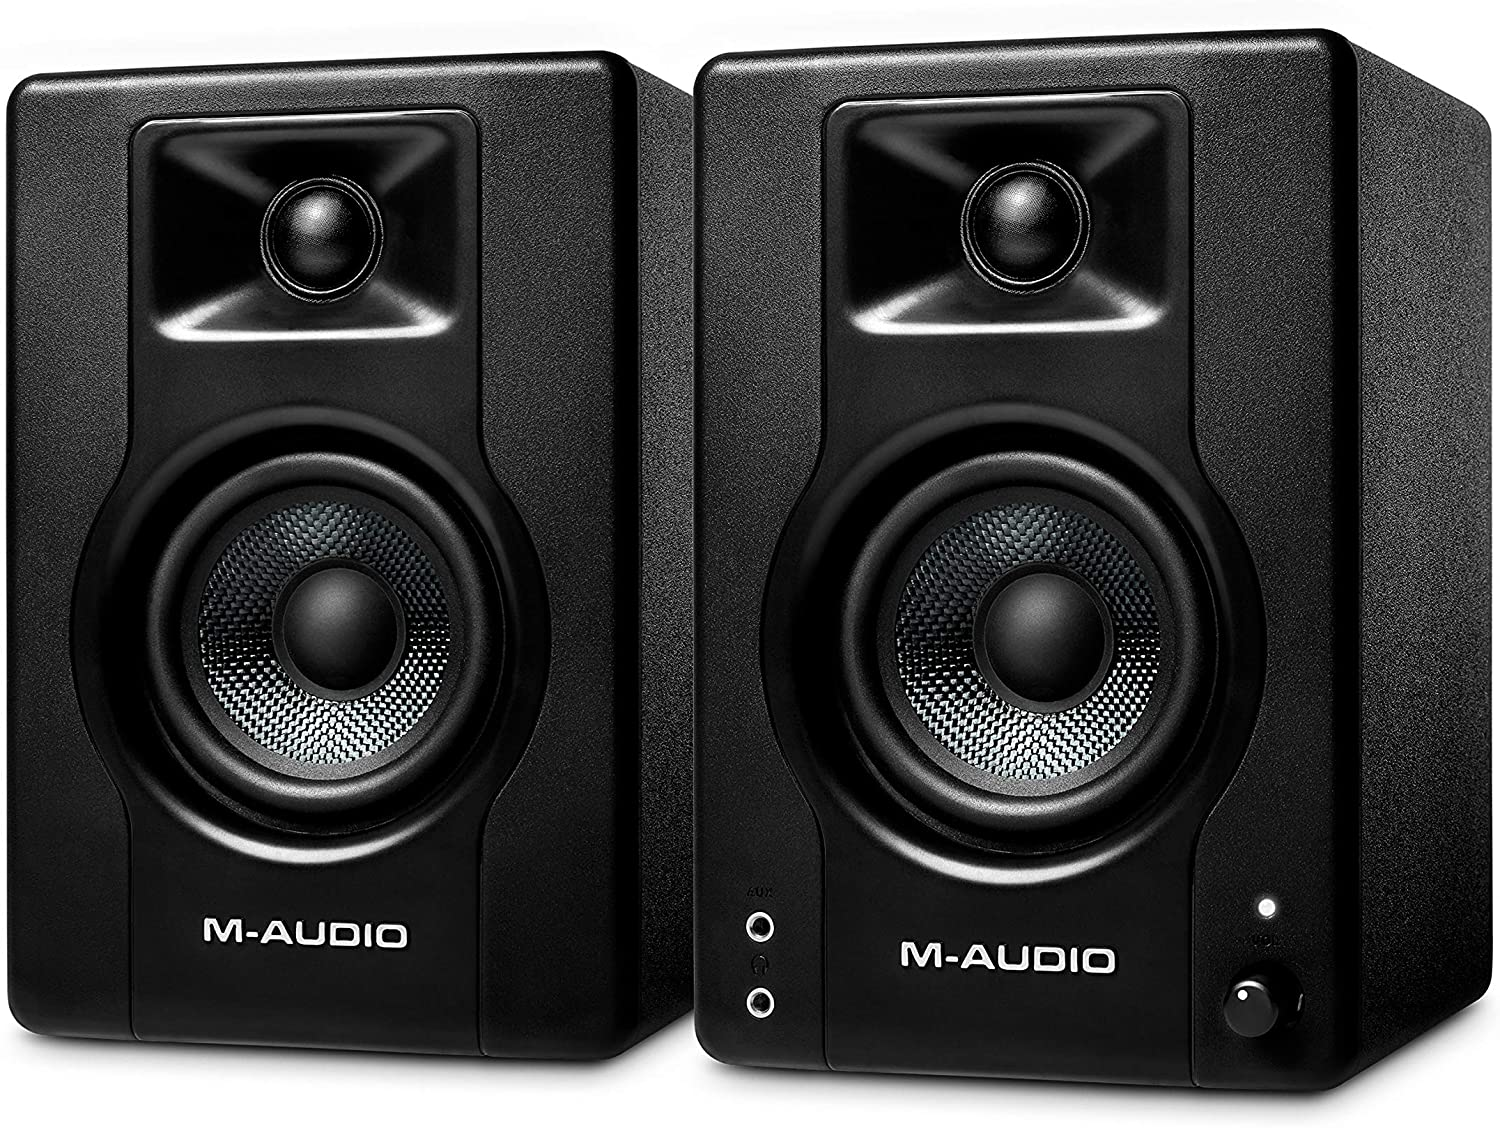 M-Audio BX3 – 120-Watt Powered Desktop Computer Speakers / Studio Monitors for Gaming, Music Production, Live Streaming and Podcasting (Pair) Pro Audio M-Audio